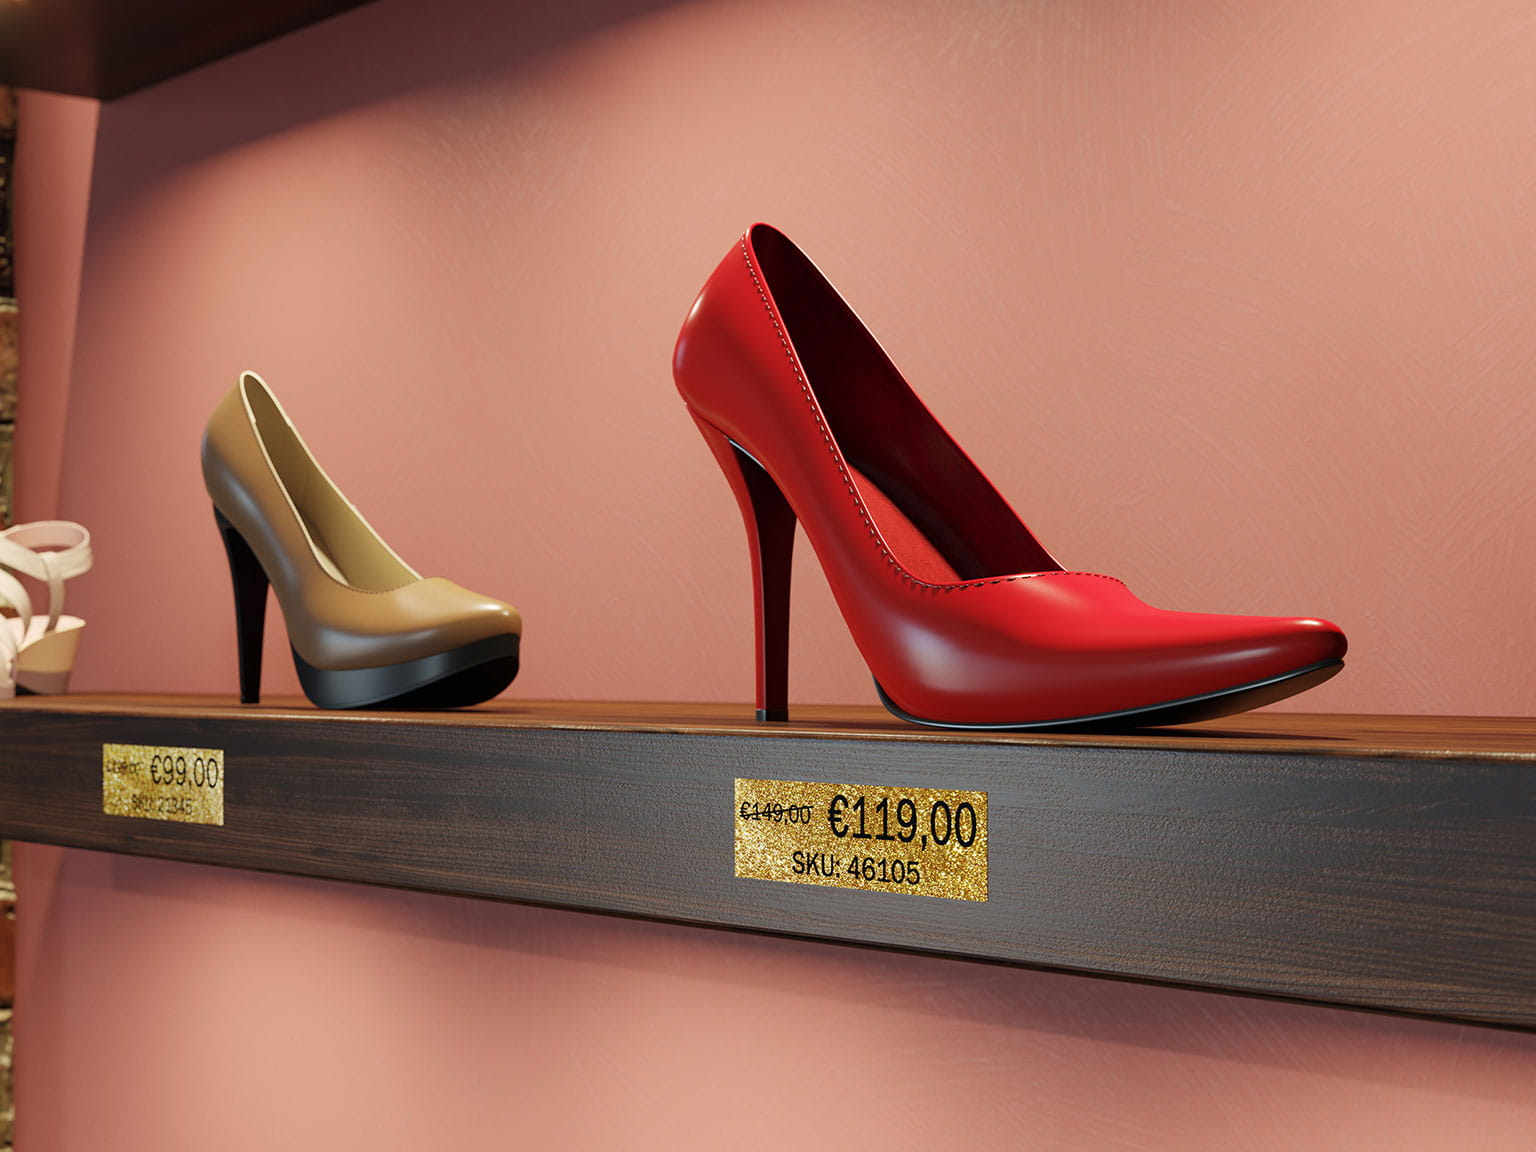 Brother premium glitter black on gold label attached on shelf edge showing price of shoes